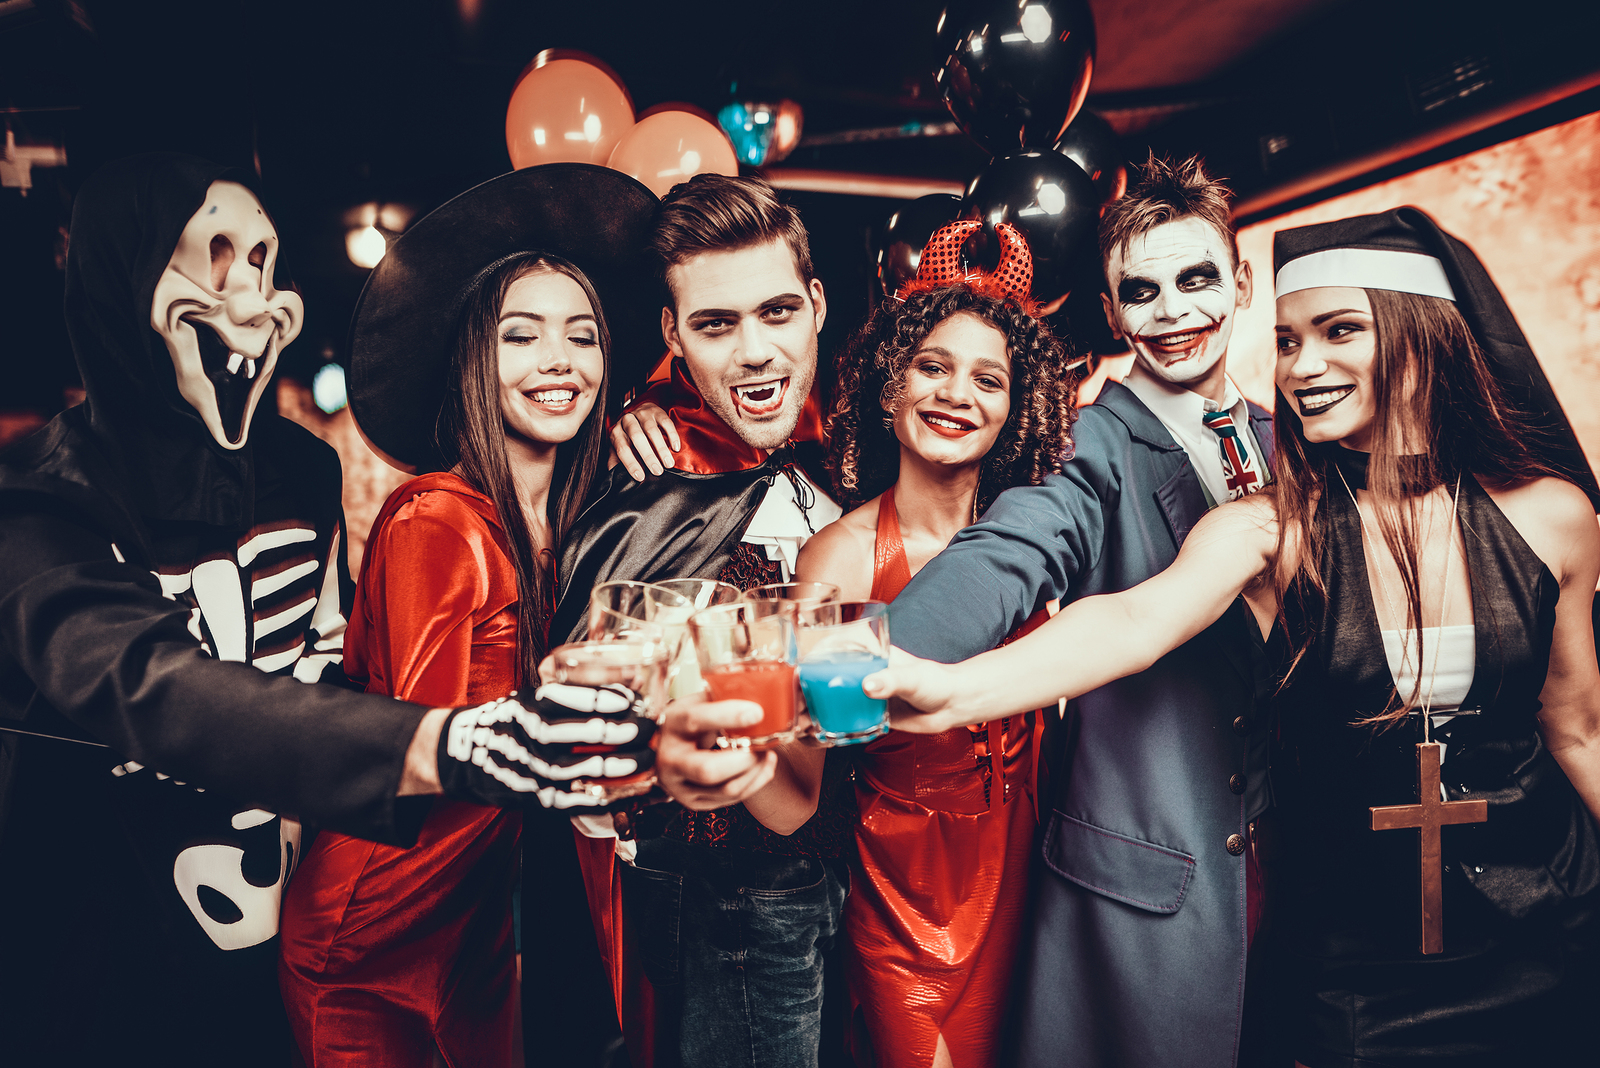 Friends In Halloween Costumes Drinking Cocktails. Group Of Young